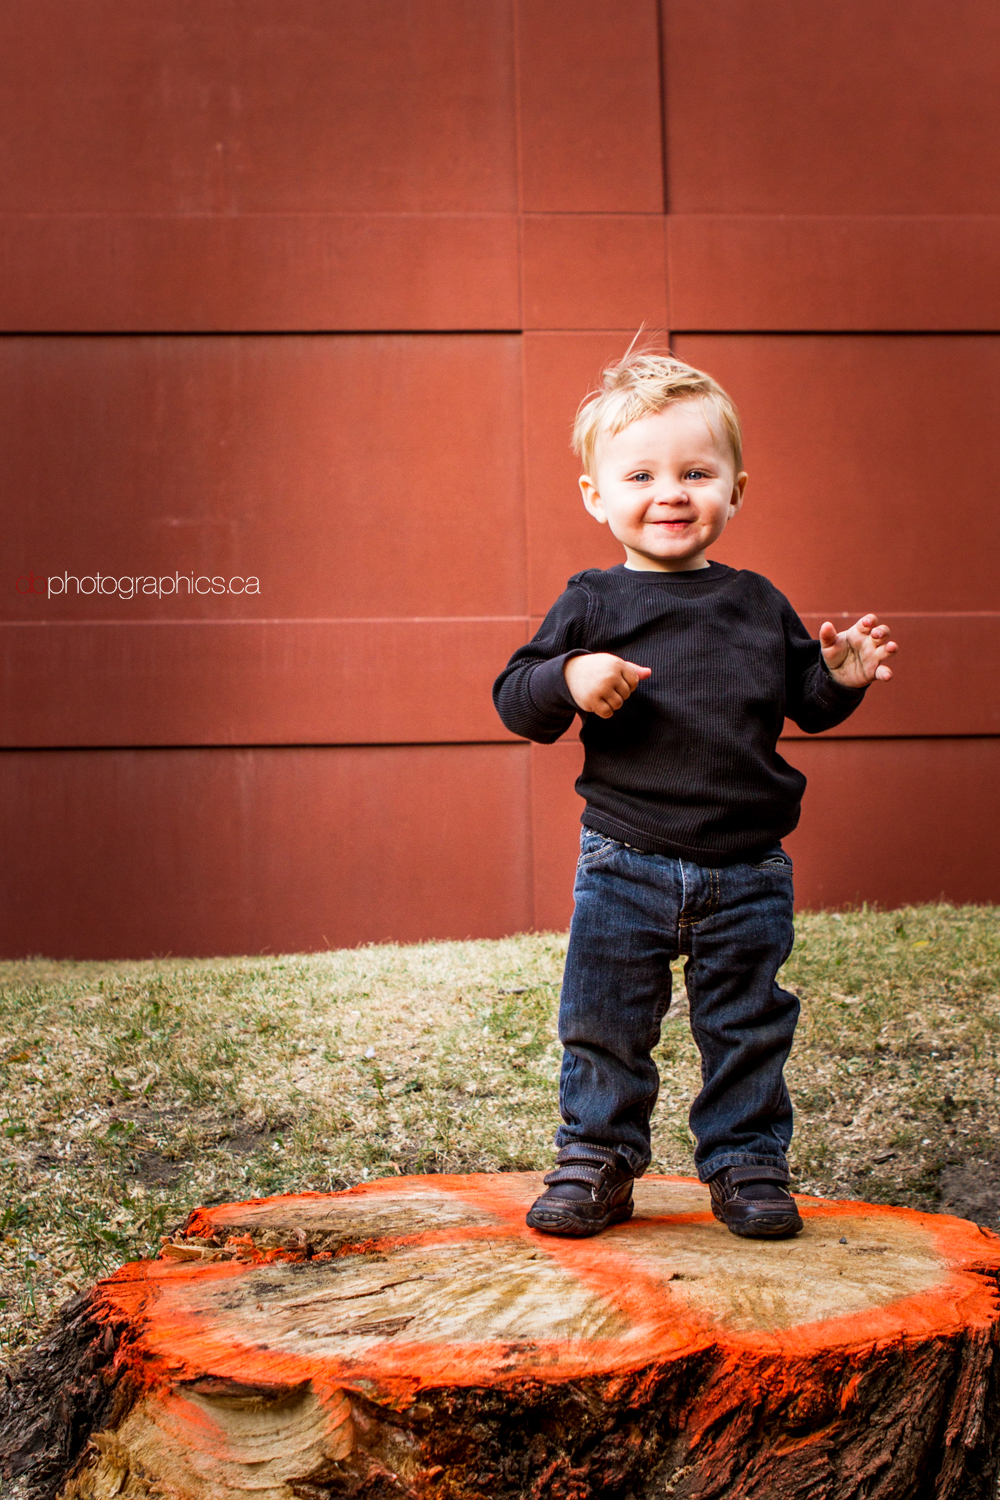 Biddy, Scott & Thomas Family Shoot - 20130923 - 0023.jpg